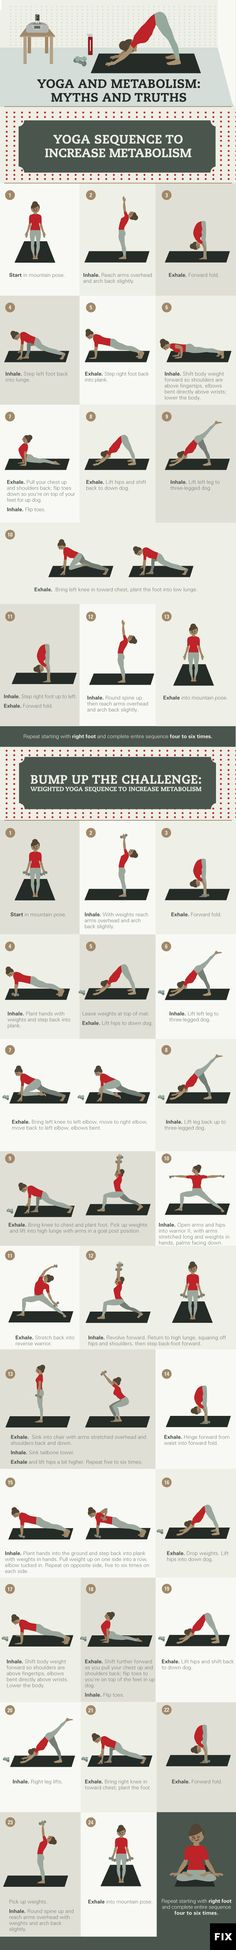 Not so sure about the weights - plenty of damage room there. Find out which yoga poses will boost your metabolism throughout the day! #Yoga http://www.fix.com/blog/yoga-and-metabolism/